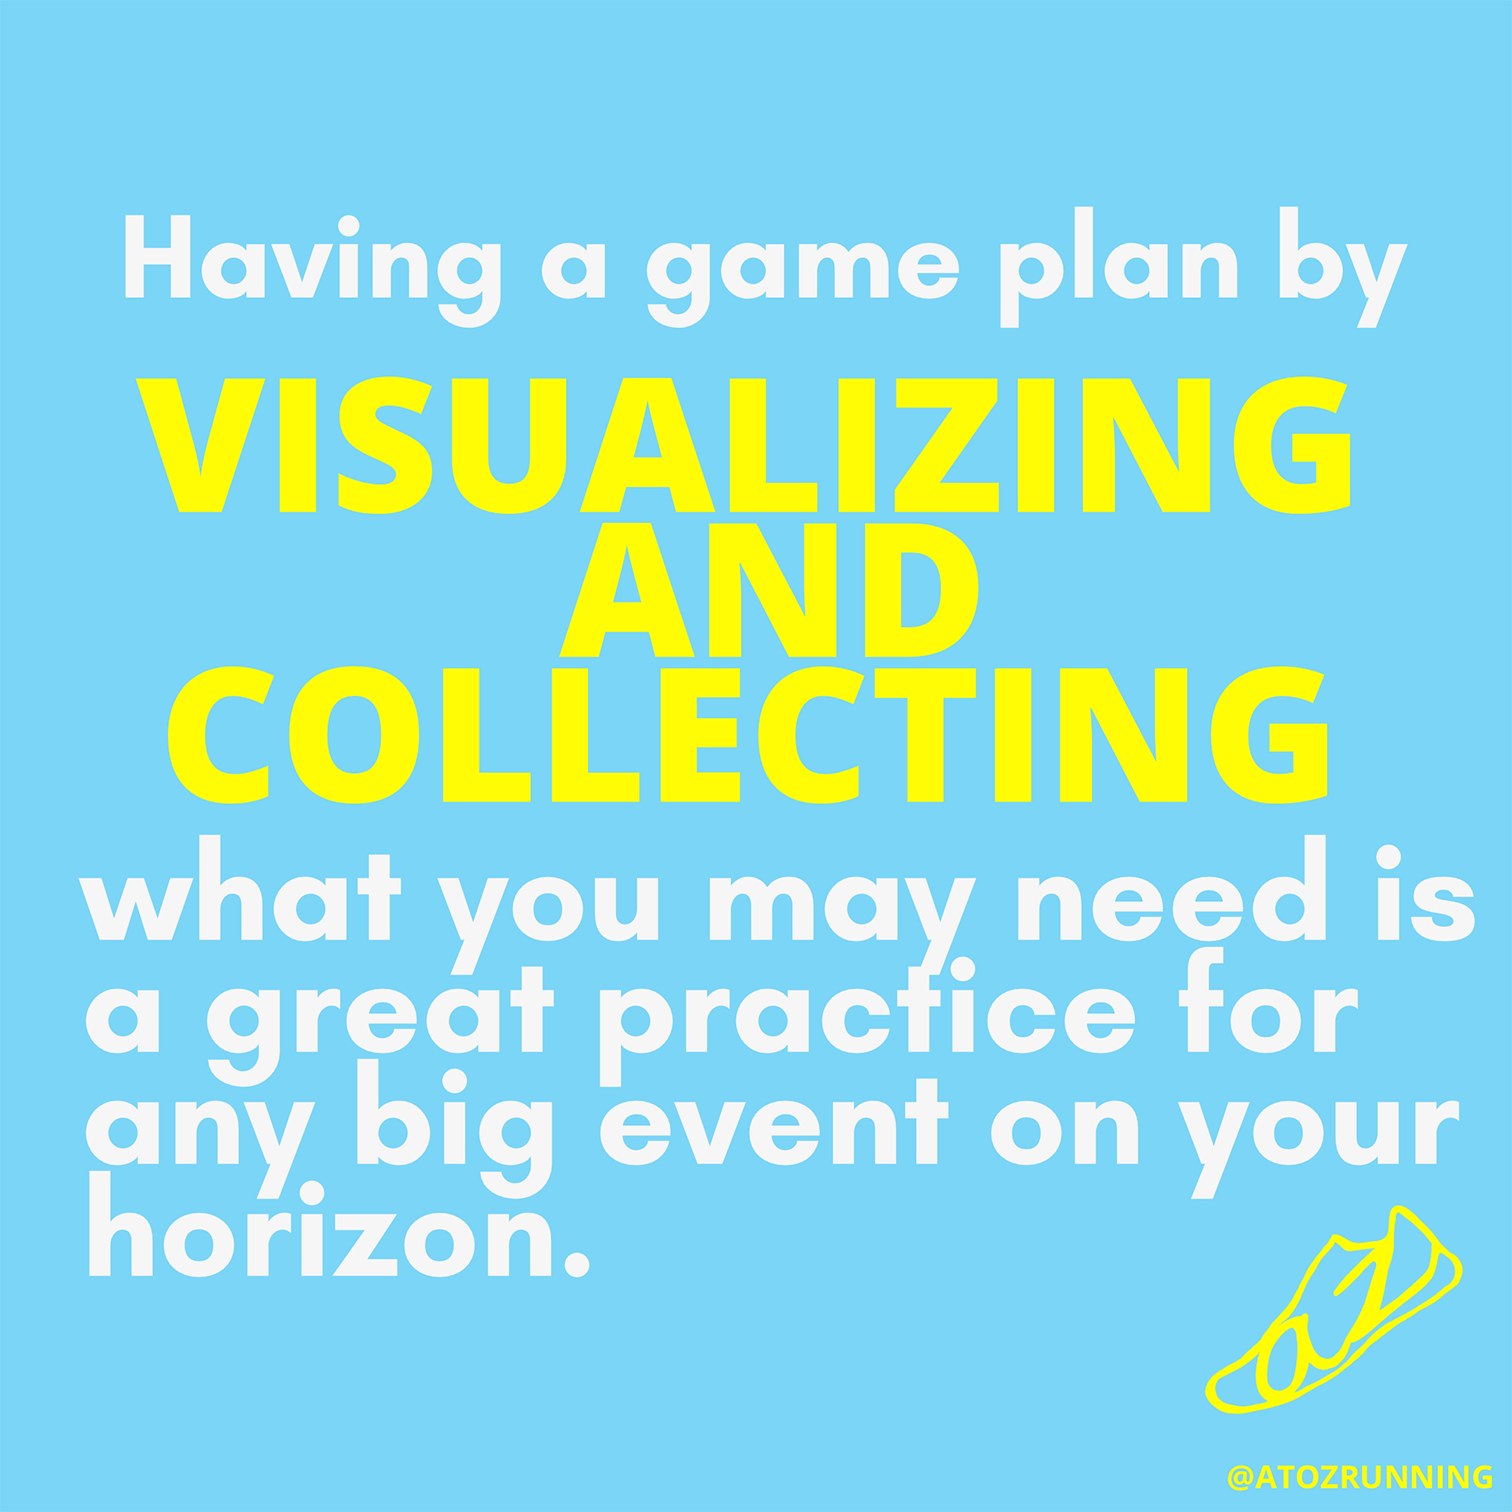 Having a game plan by visualizing and collecting what you may need is a great practice for any big event on your horizon. Running quote